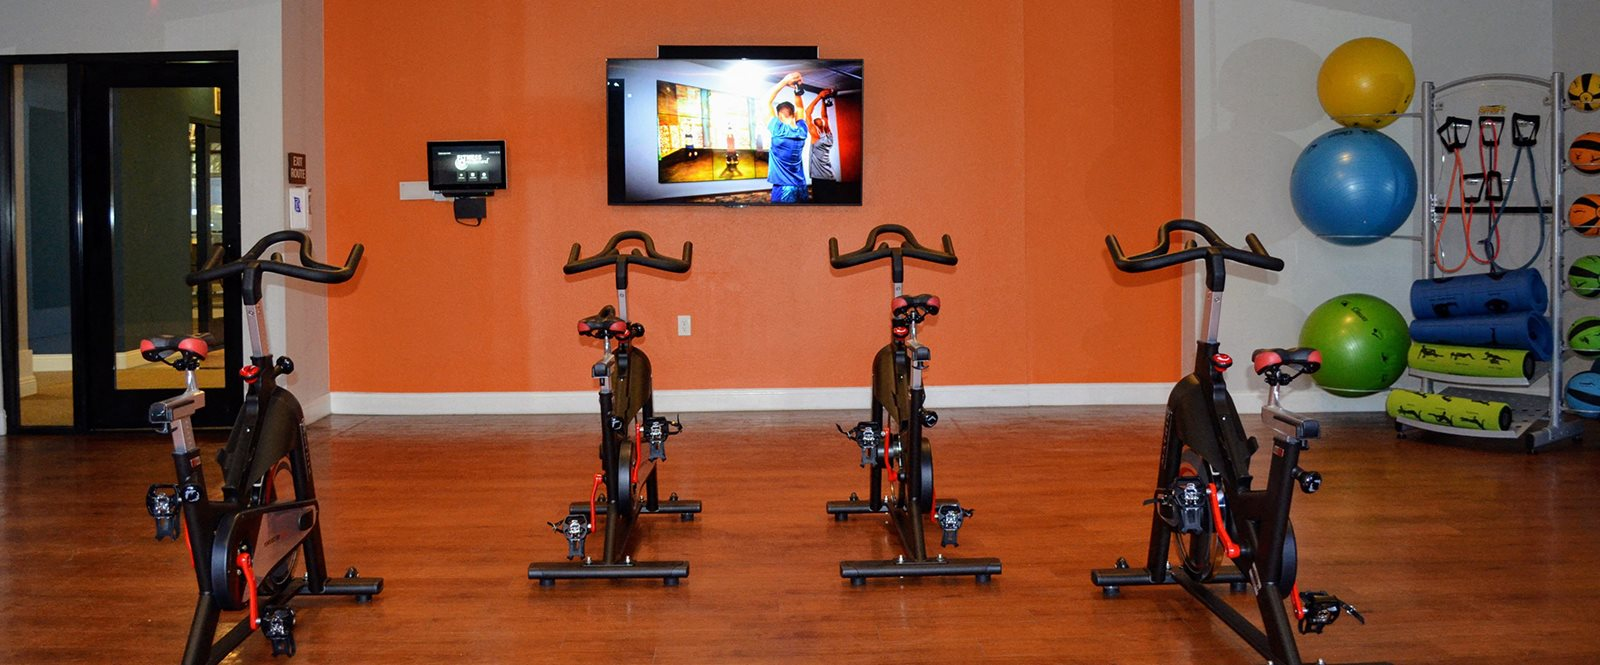 Cardio Equipment at Madison Park Apartments, Anaheim, California